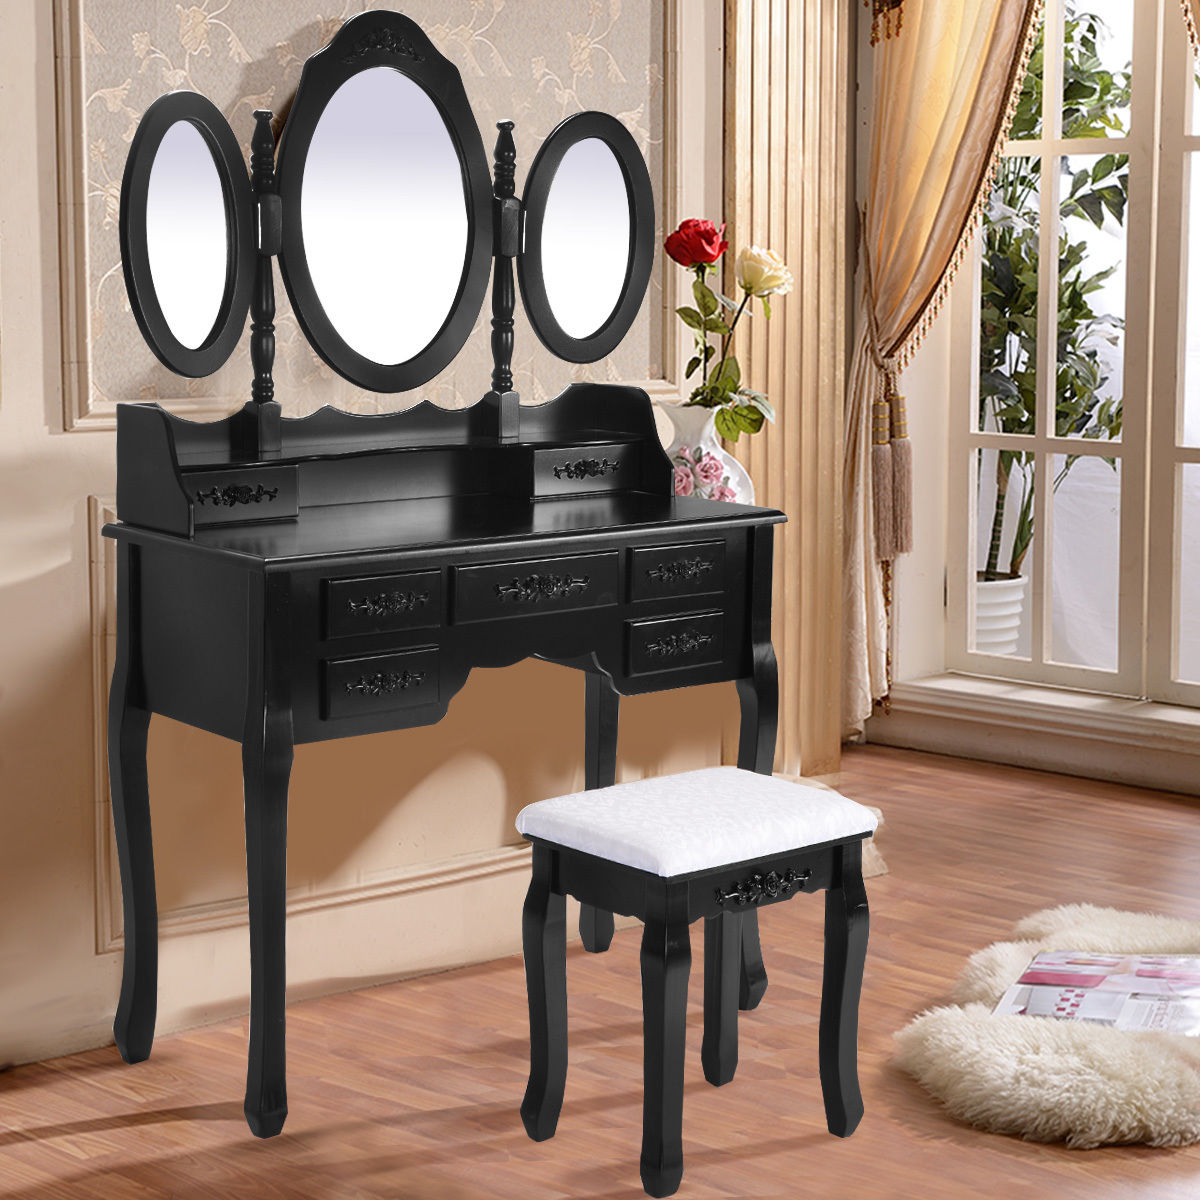 Costway Black Tri Folding Oval Mirror Wood Vanity Makeup Table Set with Stool &7 Drawers by Costway